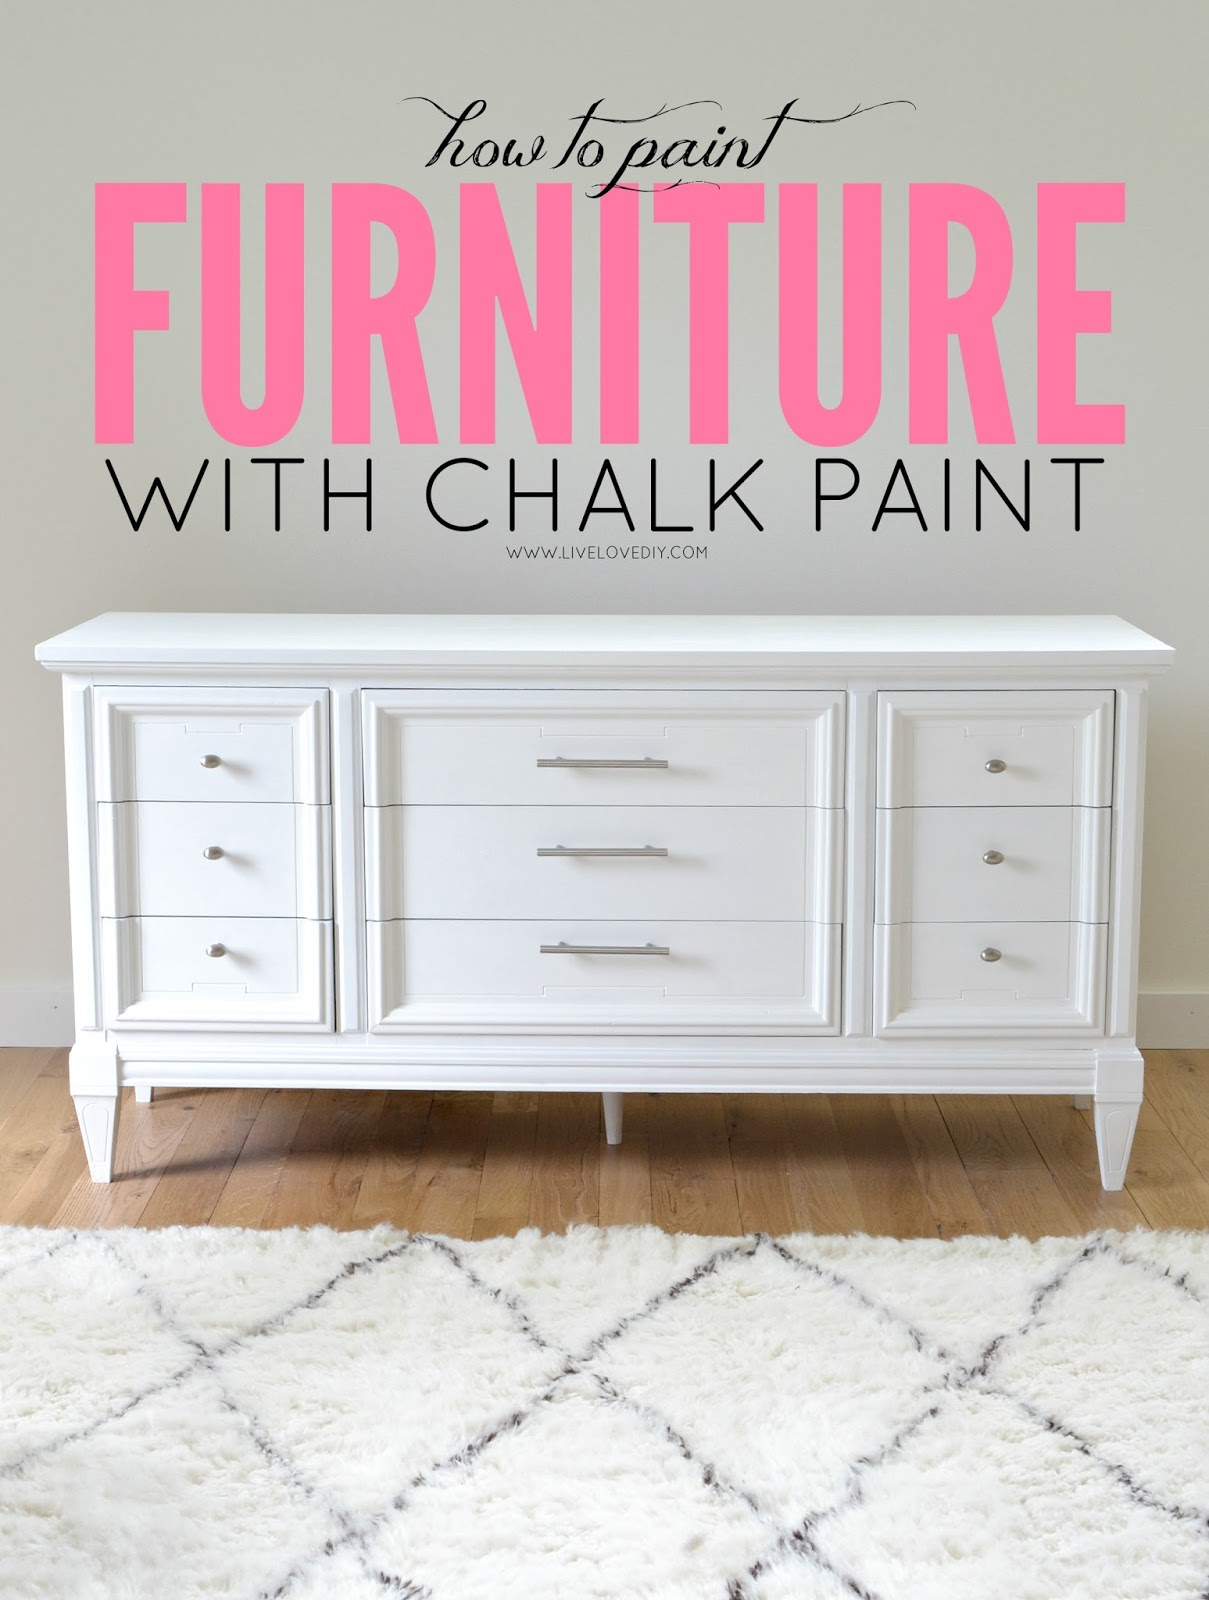 how to paint furniture with chalk paint refinish kitchen table How To Paint Furniture with Chalk Paint and how to survive a DIY disaster